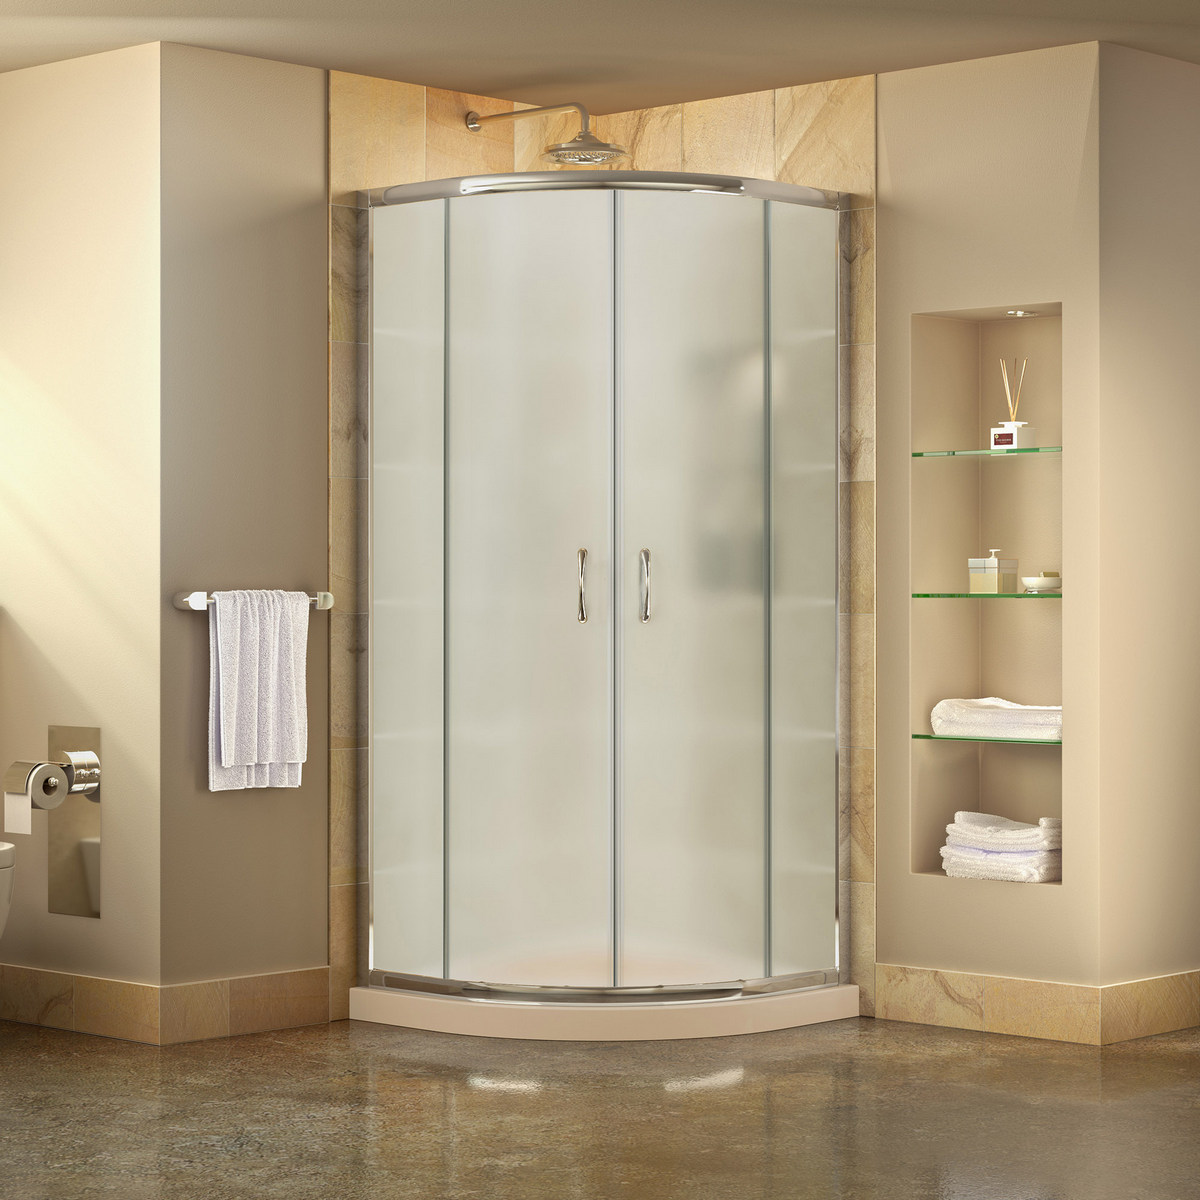 Dreamline Prime Frosted Sliding Shower Enclosure Chrome Corner